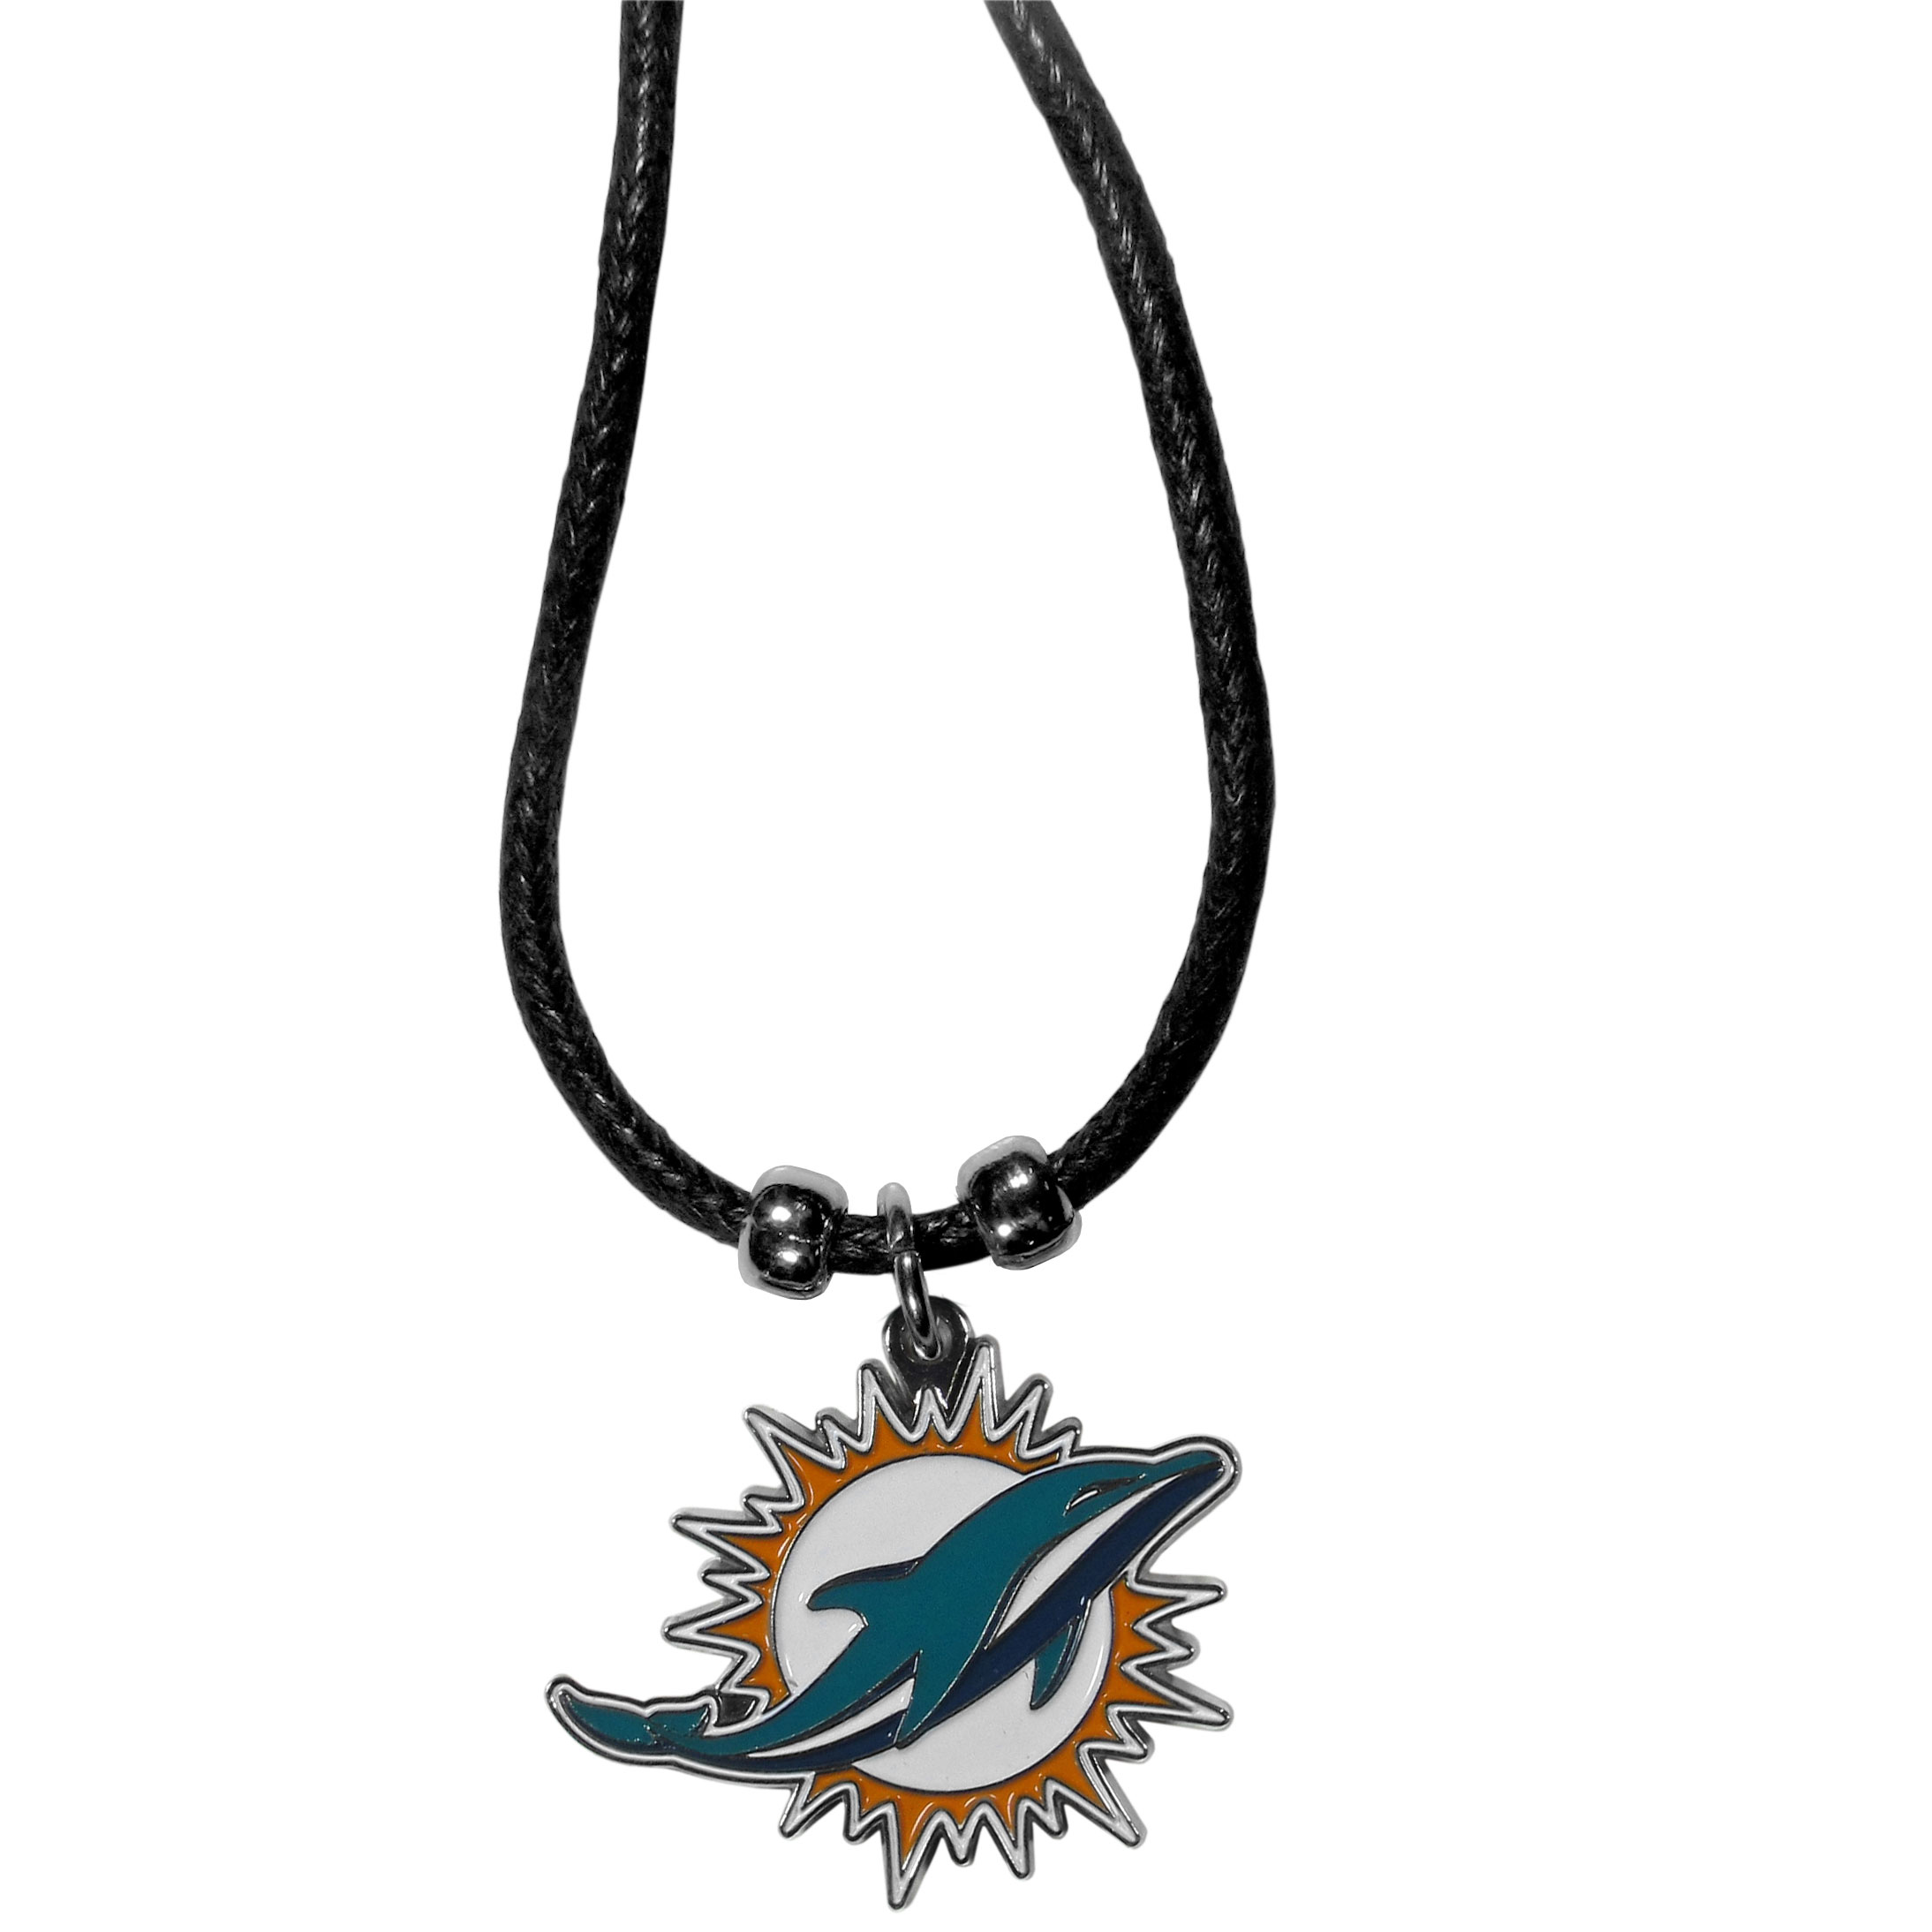 Miami Dolphins Cord Necklace - This classic style cotton cord necklace features an extra large Miami Dolphins pendant on a 21 inch cord.